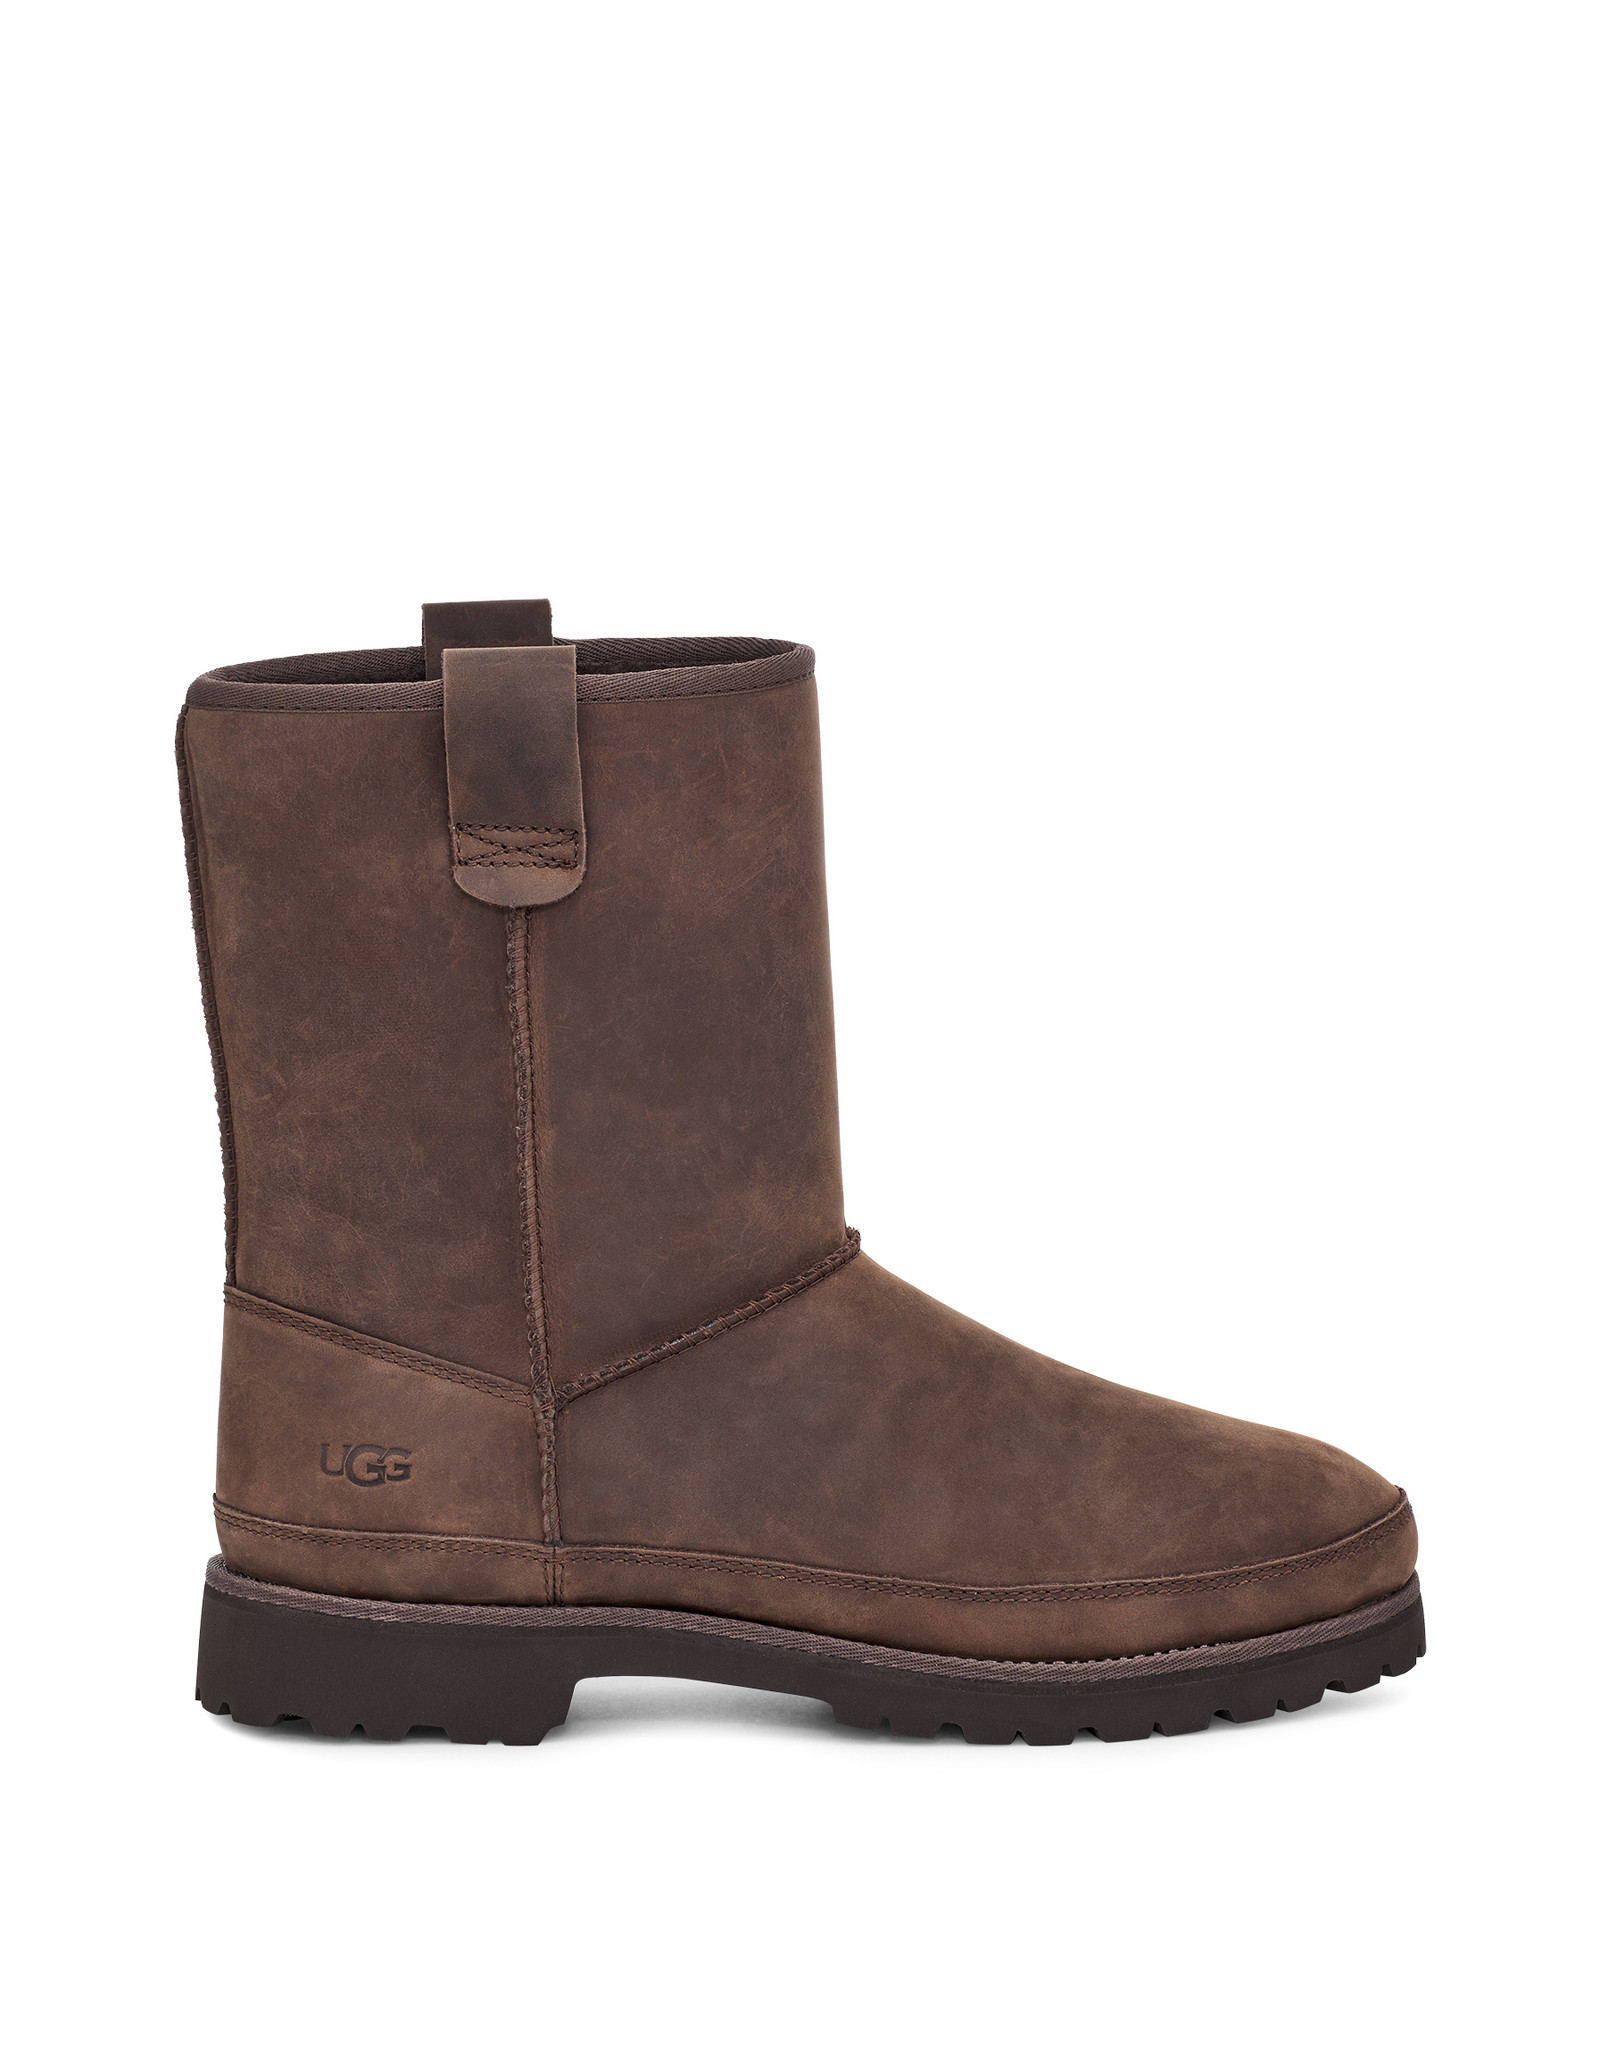 UGG MEN'S COURTLAND WEATHER BOOT-GRIZZLY